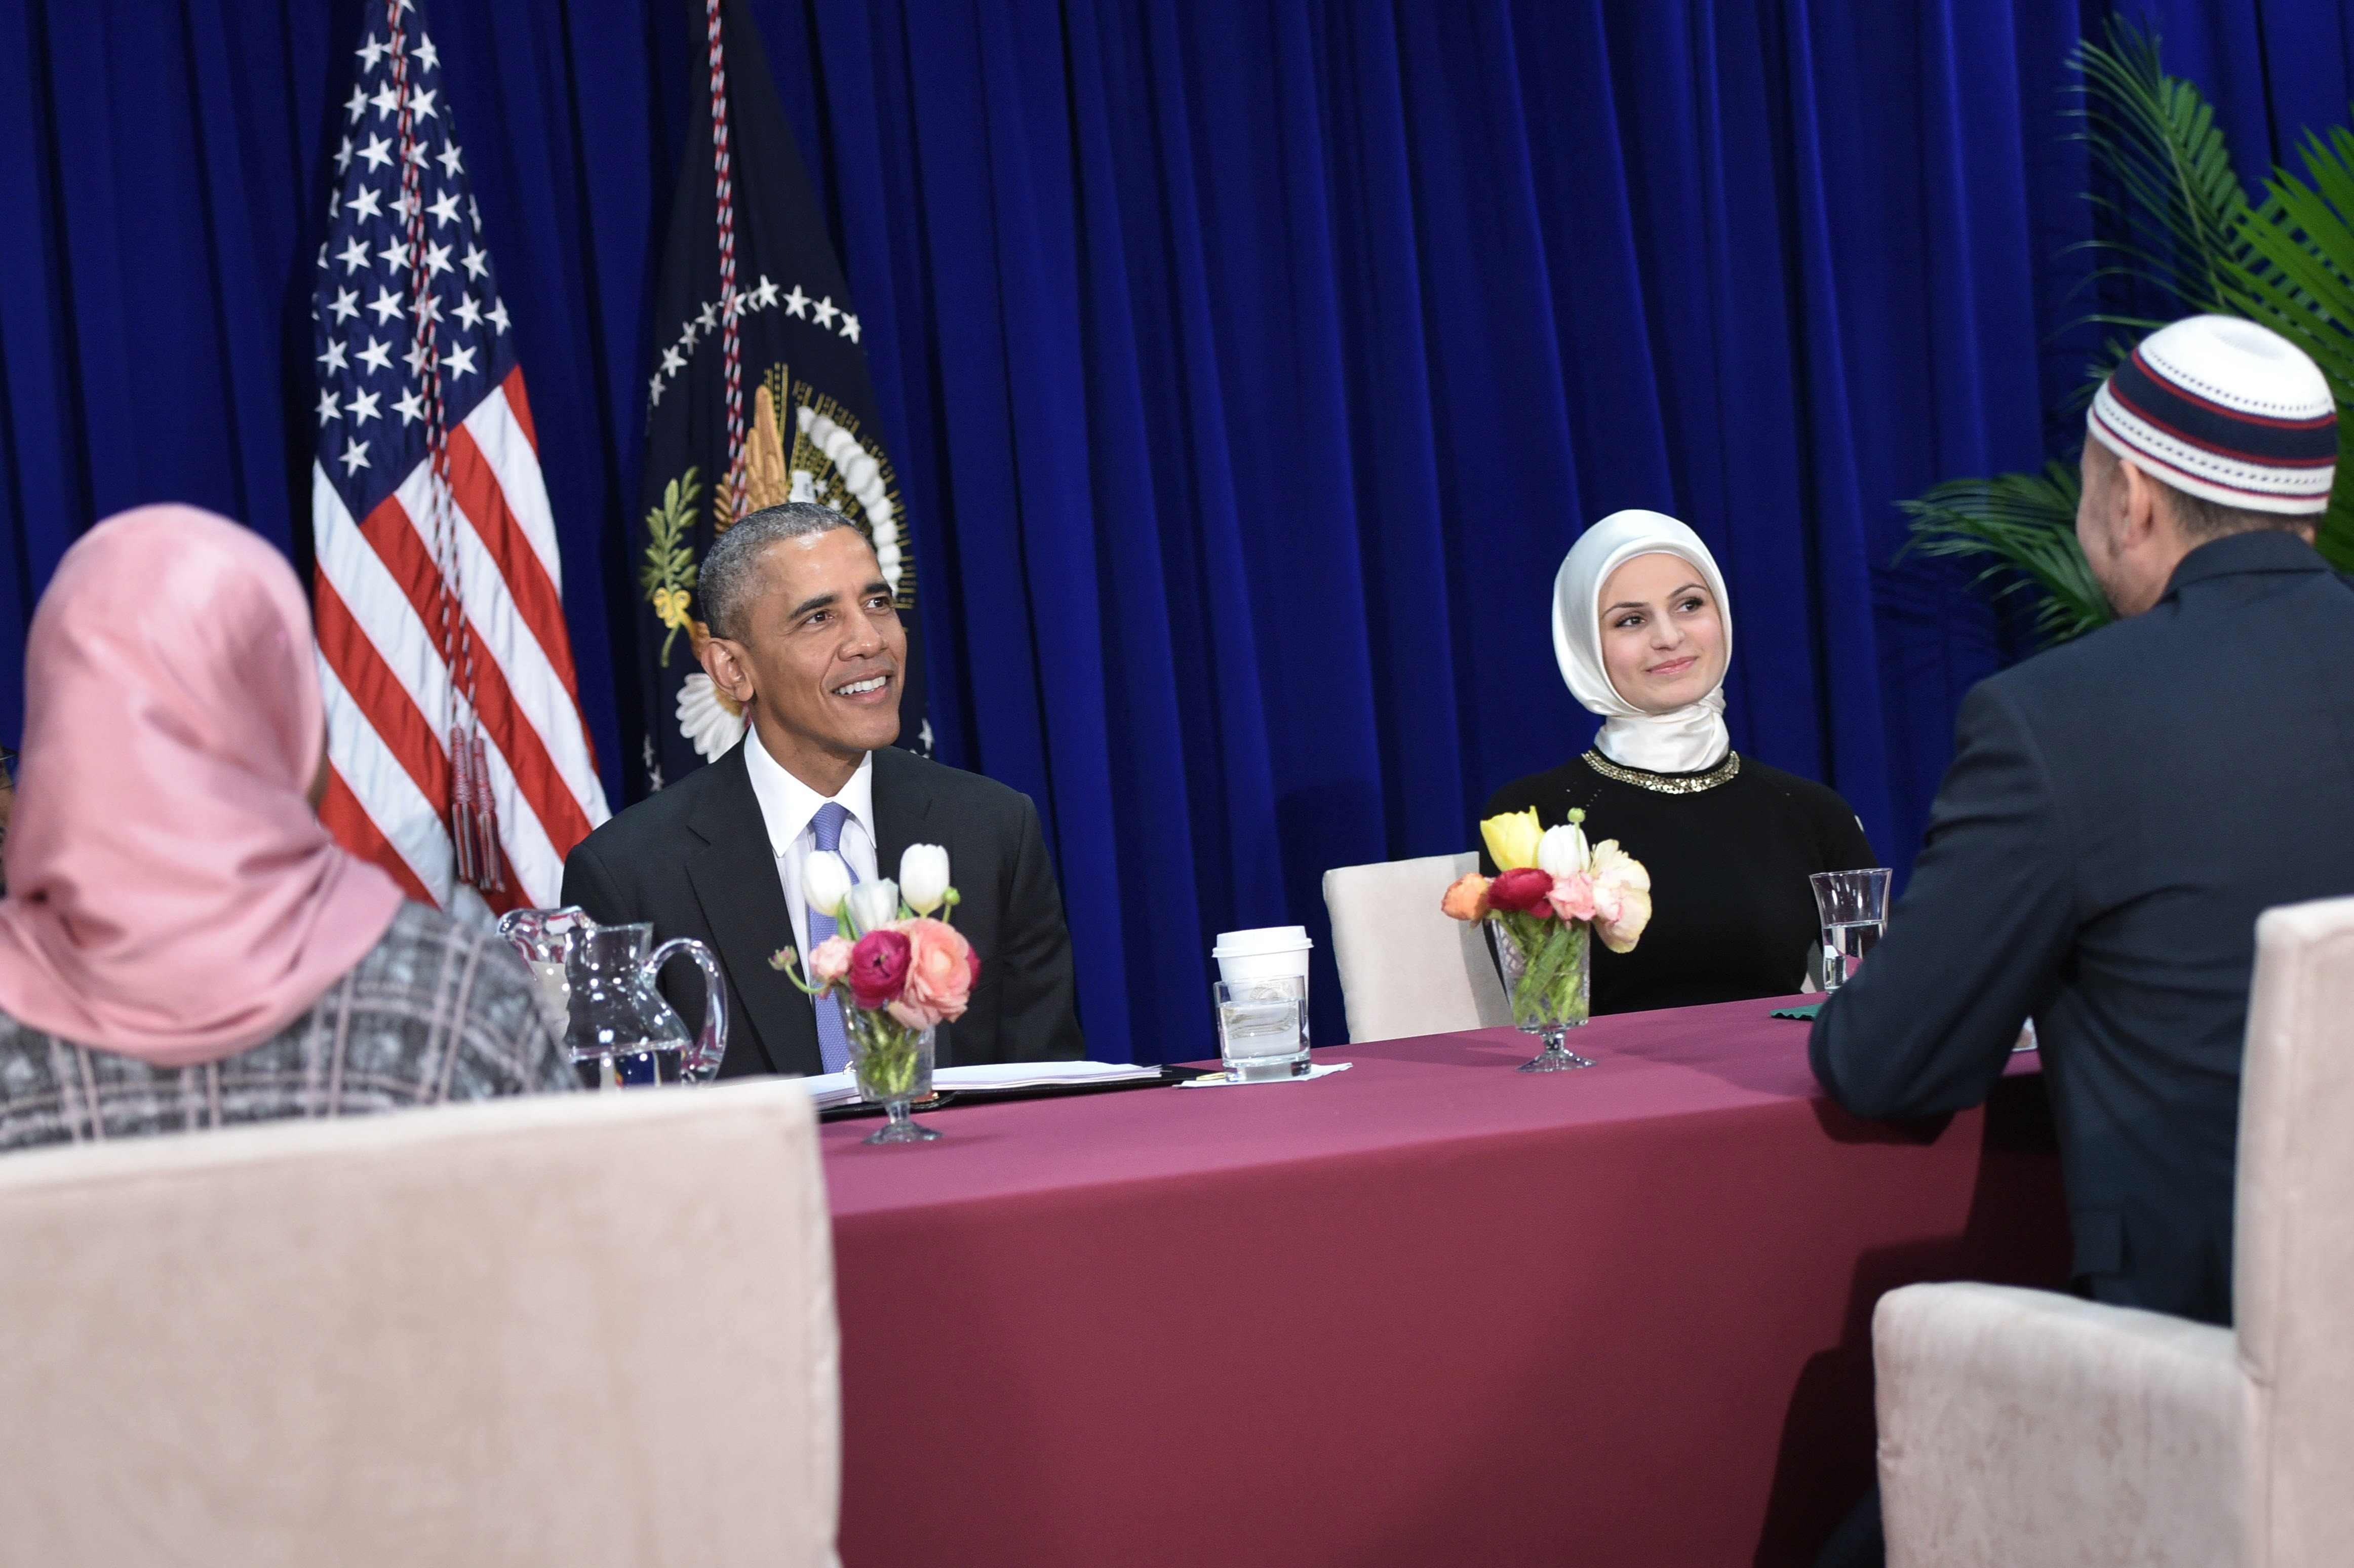 US President Barack Obama participates in a roundtable discussion with members of the Muslim community while visiting the Islamic Society of Baltimore February 3, 2016 in Windsor Mill, Maryland.  Seven years into his presidency, Barack Obama made his first trip to an American mosque on February 4, offering a high-profile rebuttal of harsh Republican election-year rhetoric against Muslims.   / AFP / MANDEL NGAN        (Photo credit should read MANDEL NGAN/AFP/Getty Images)